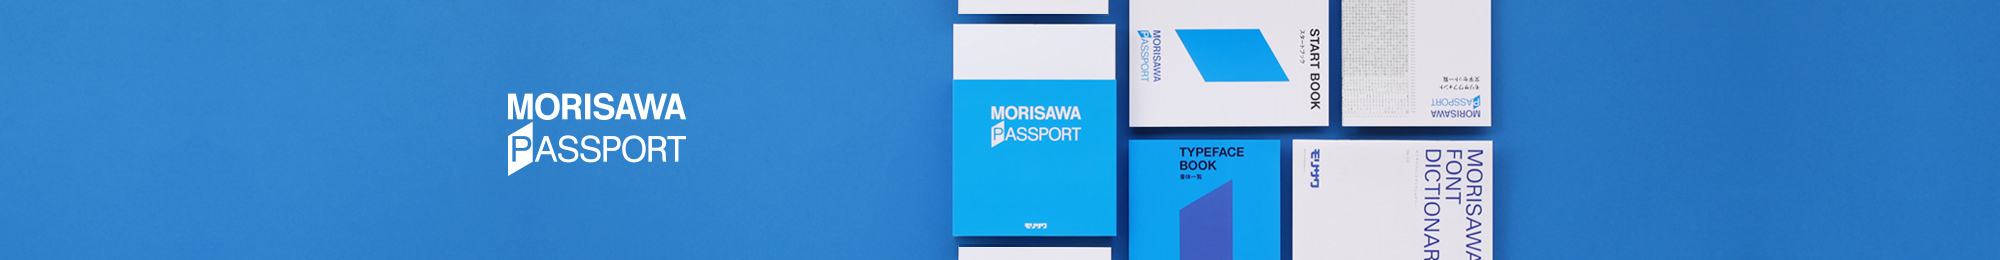 http://www.morisawa.co.jp/products/fonts/passport/